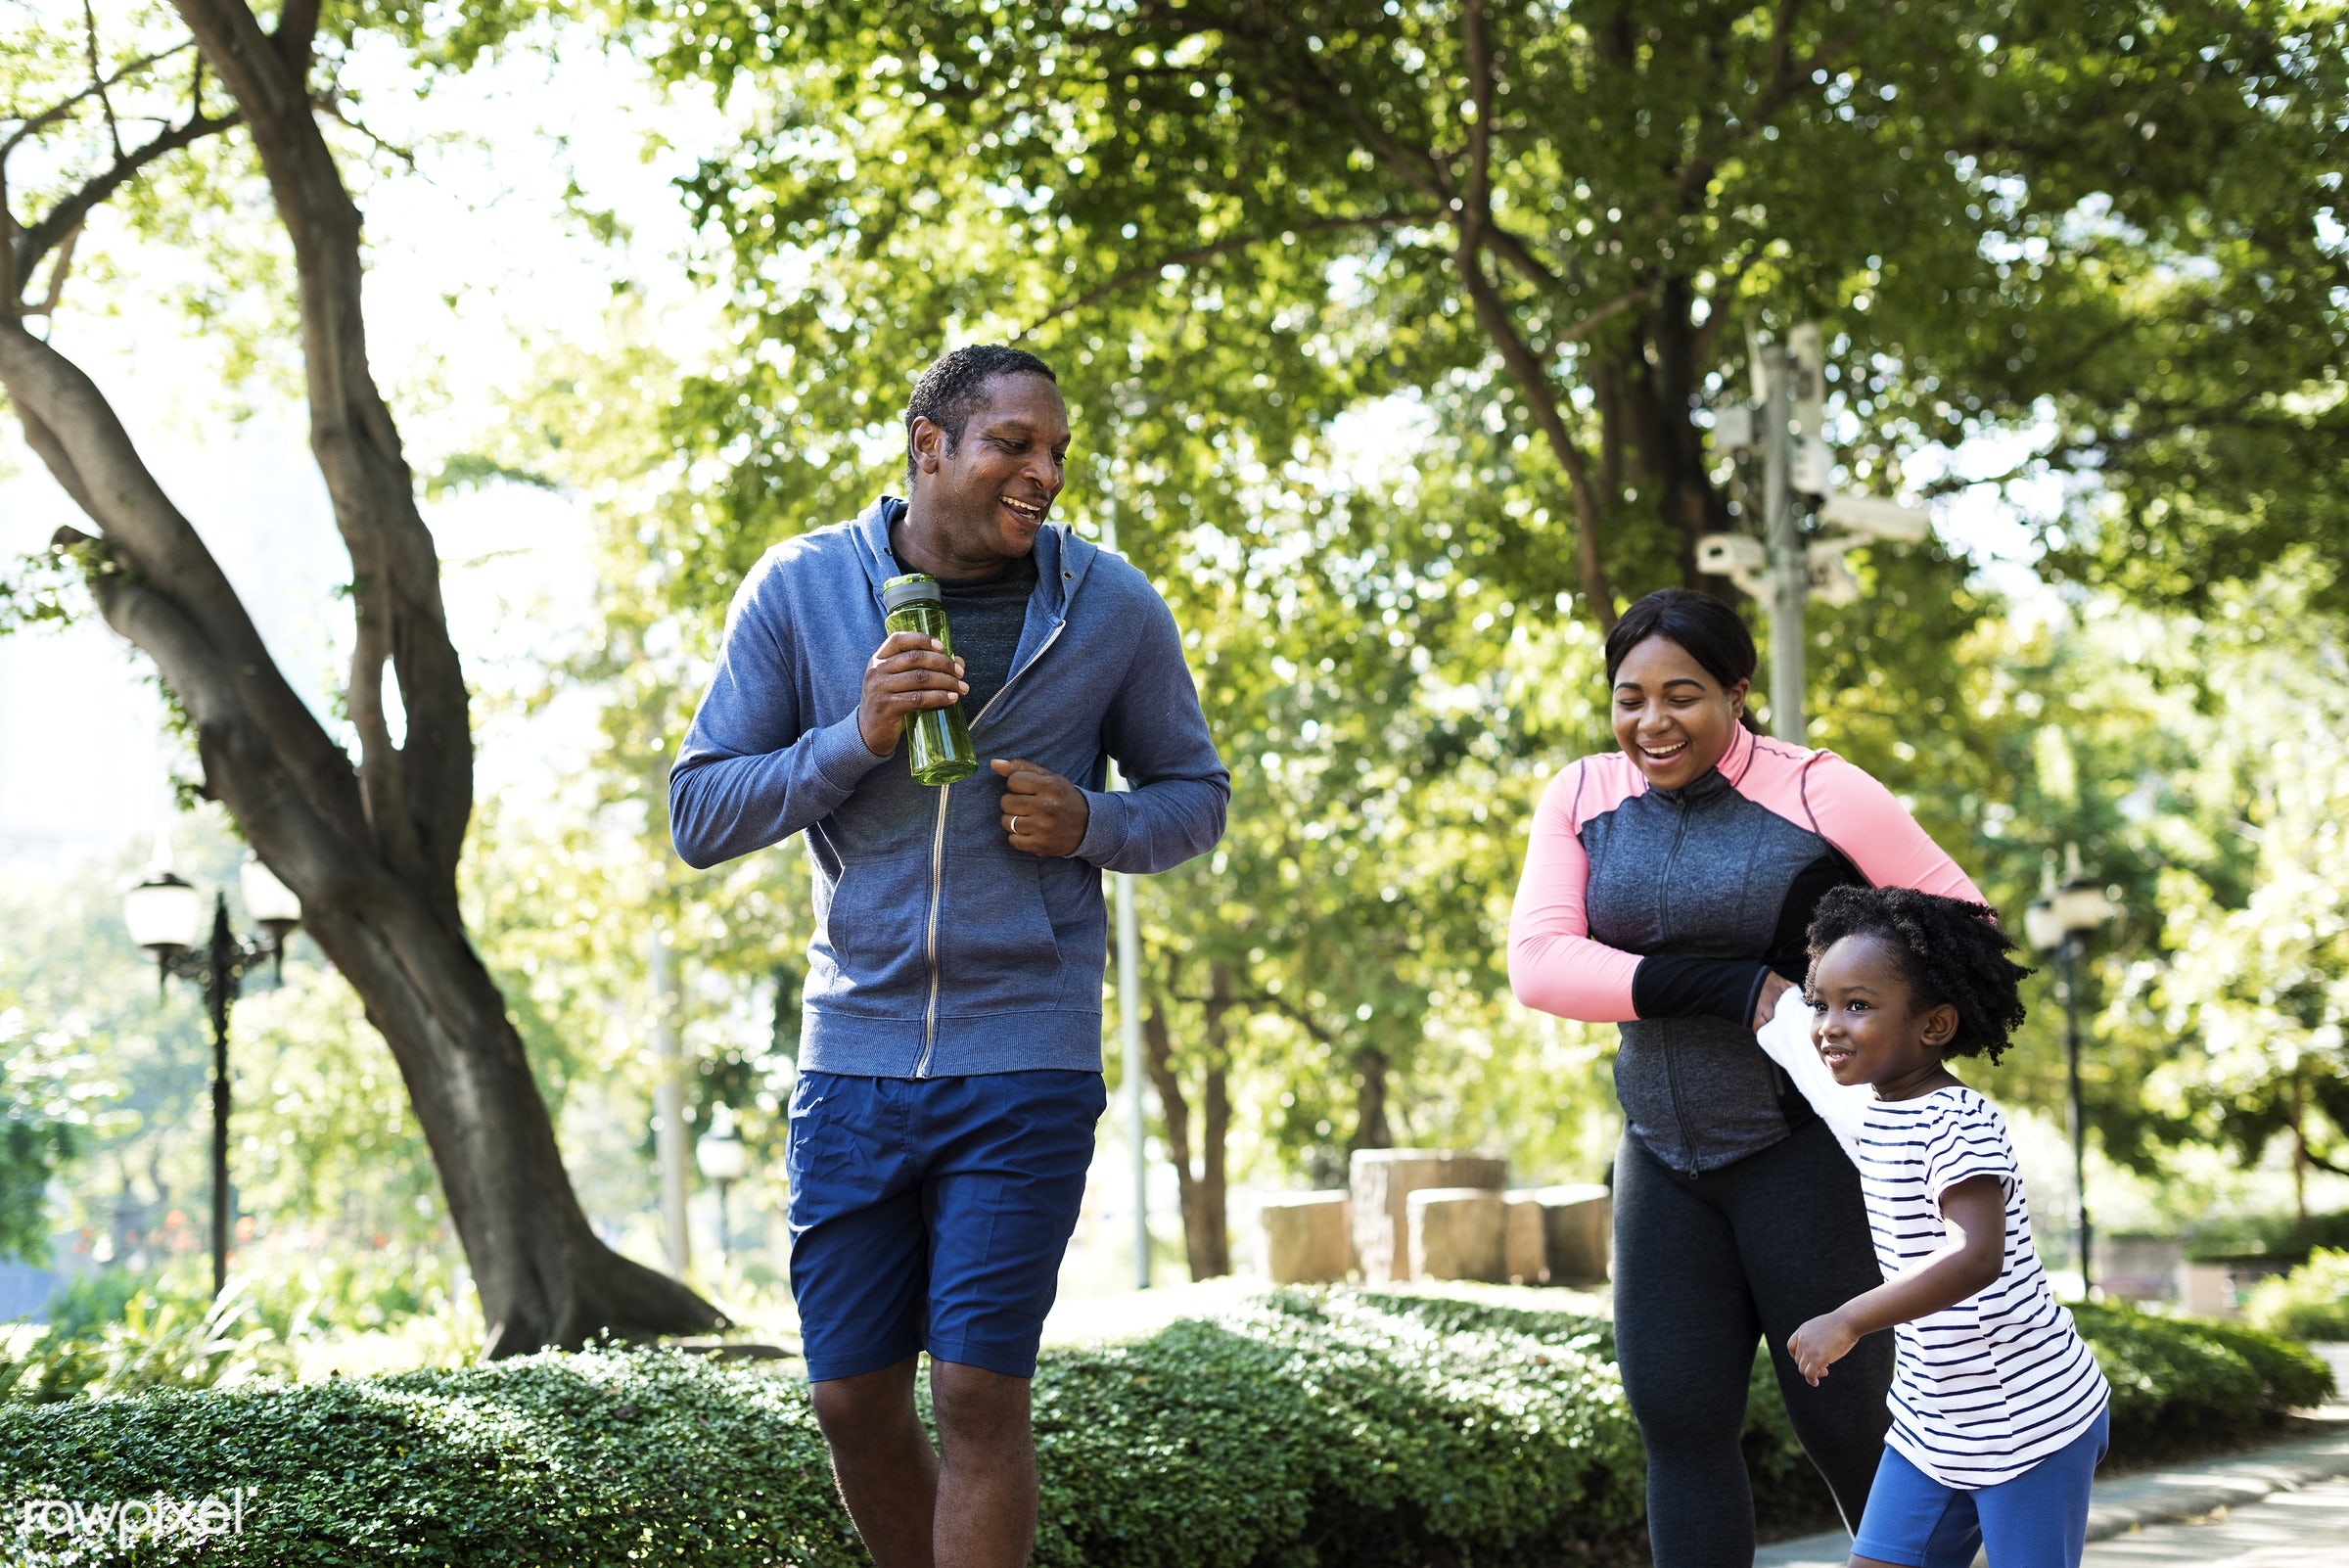 parents, african, land, daughter, exercise, recreation, related, father, love, sister, nature, green area, family, wellness...